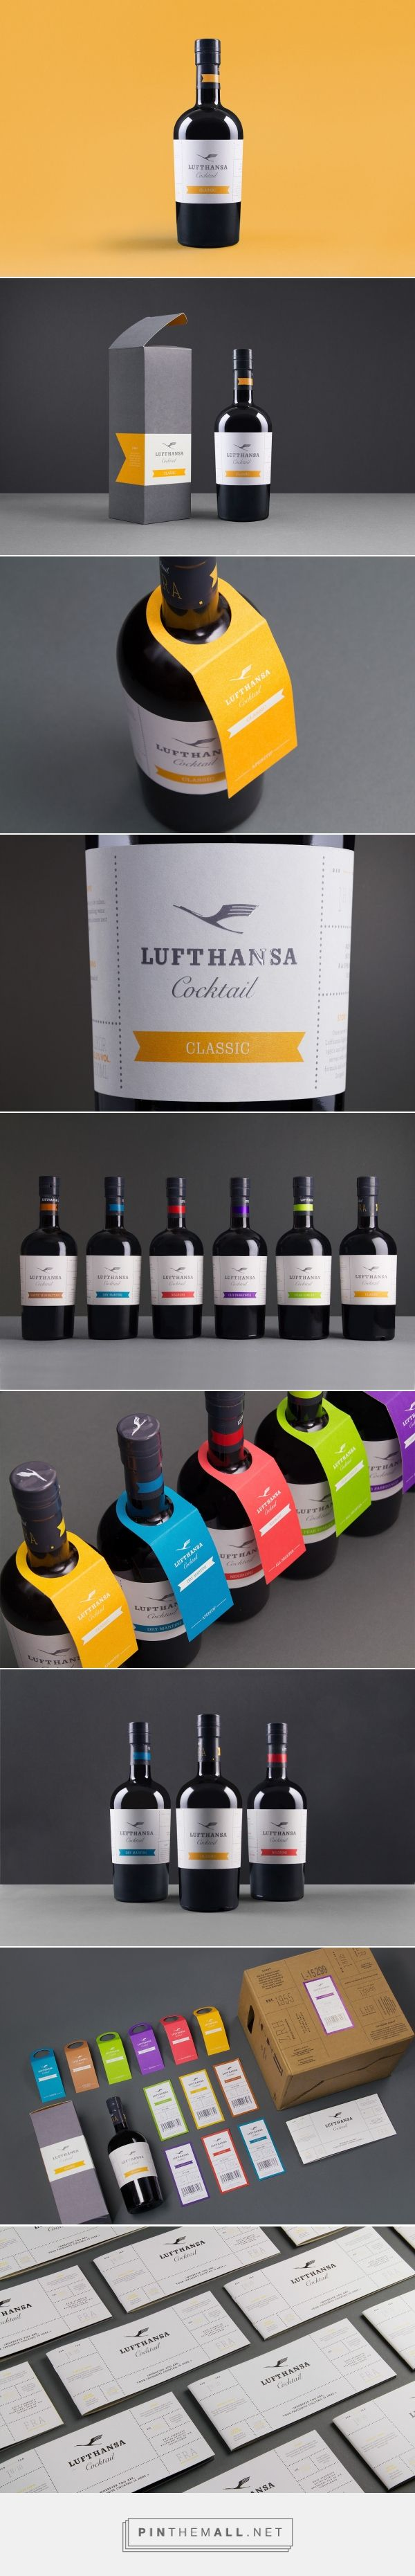 Lufthansa Cocktail - Packaging of the World - Creative Package Design Gallery - http://www.packagingoftheworld.com/2017/01/lufthansa-cocktail.html